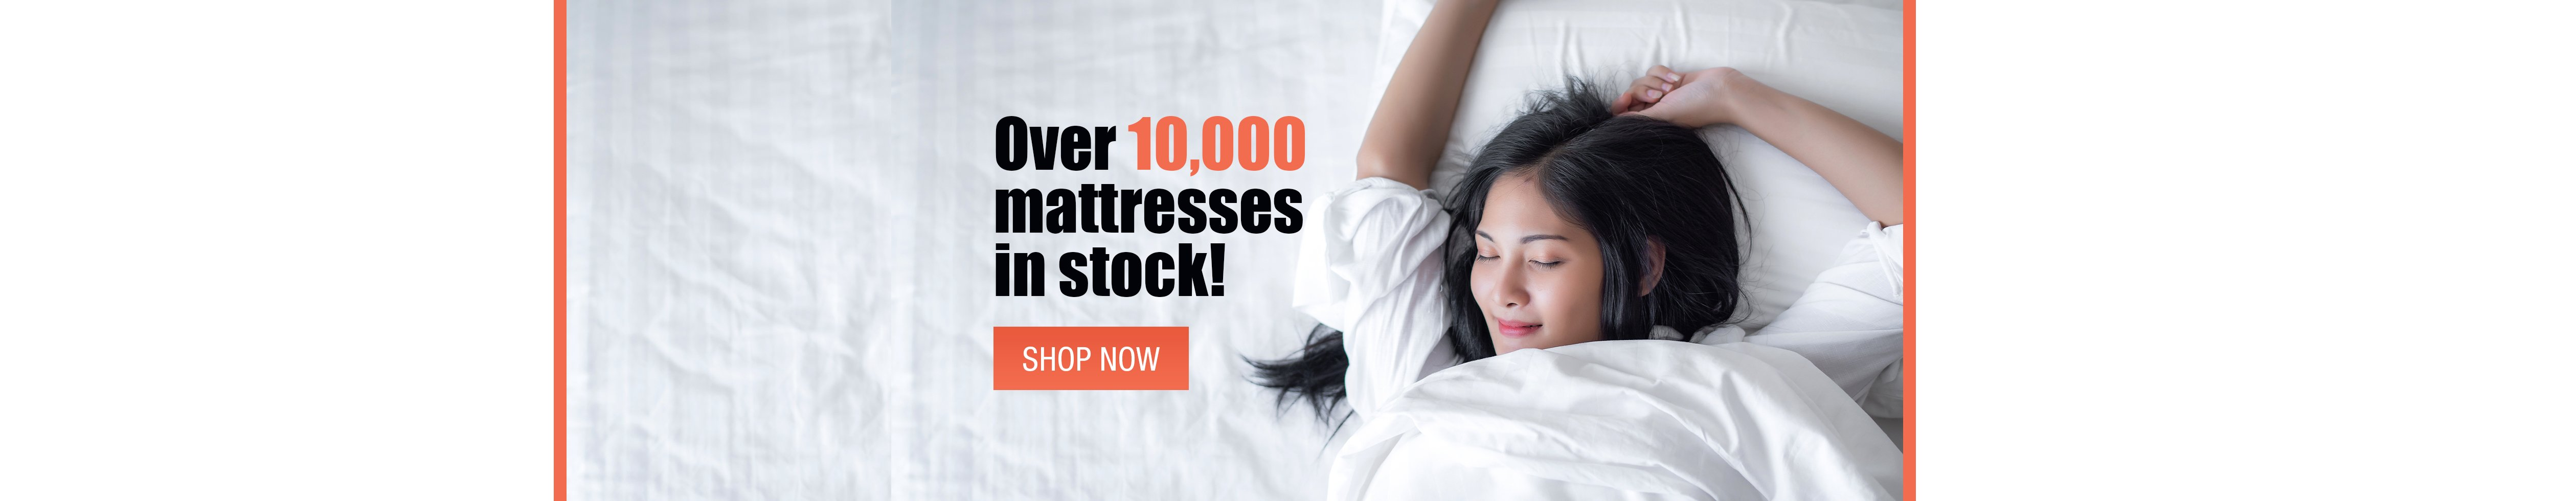 Over 10,000 mattresses in stock. Find the perfect one today in a Mattress Store at RC Willey.